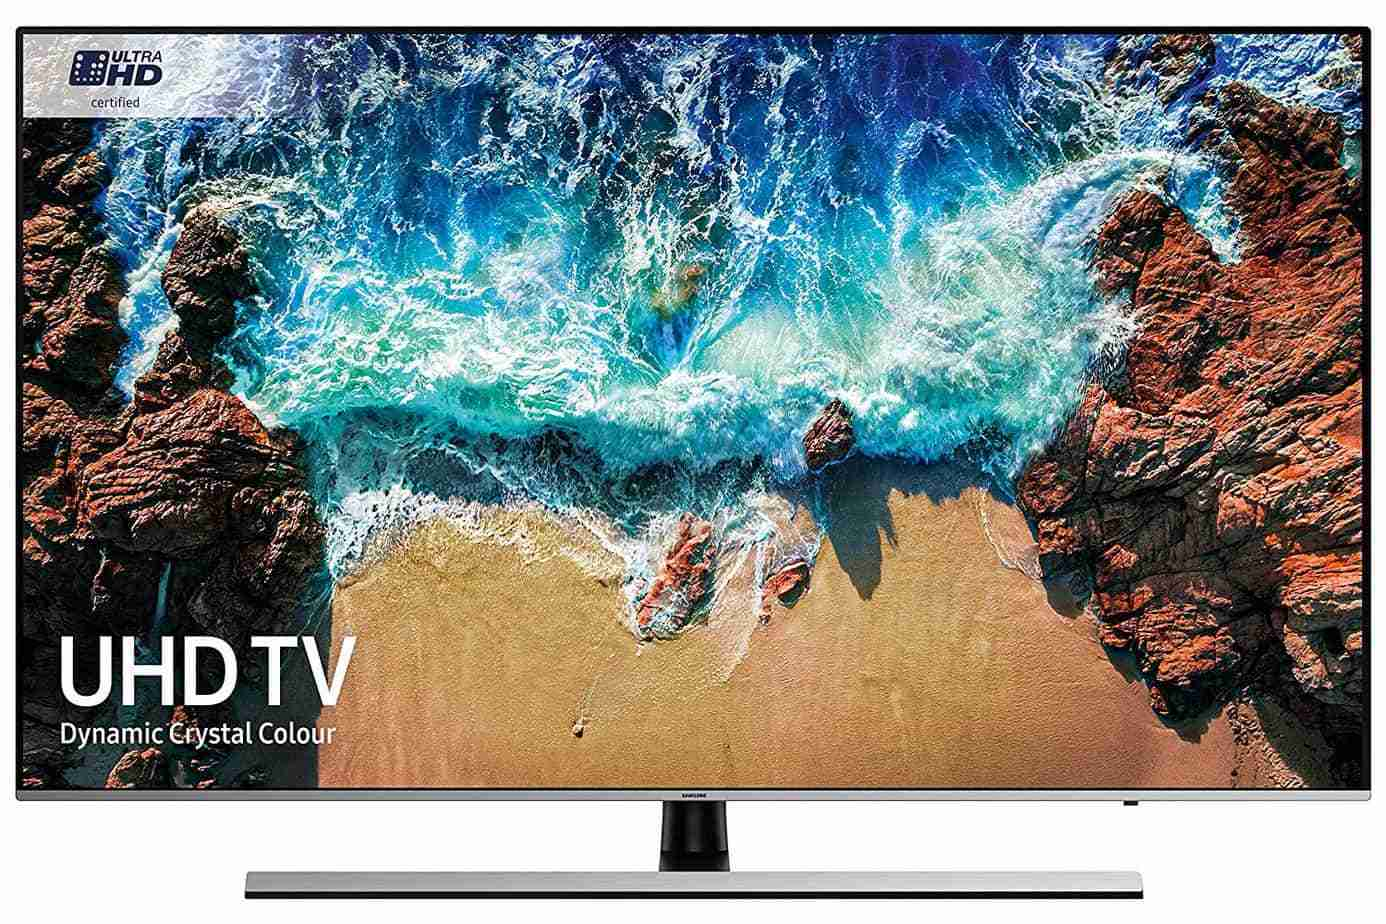 Best gaming 4k tv 2019 in UK